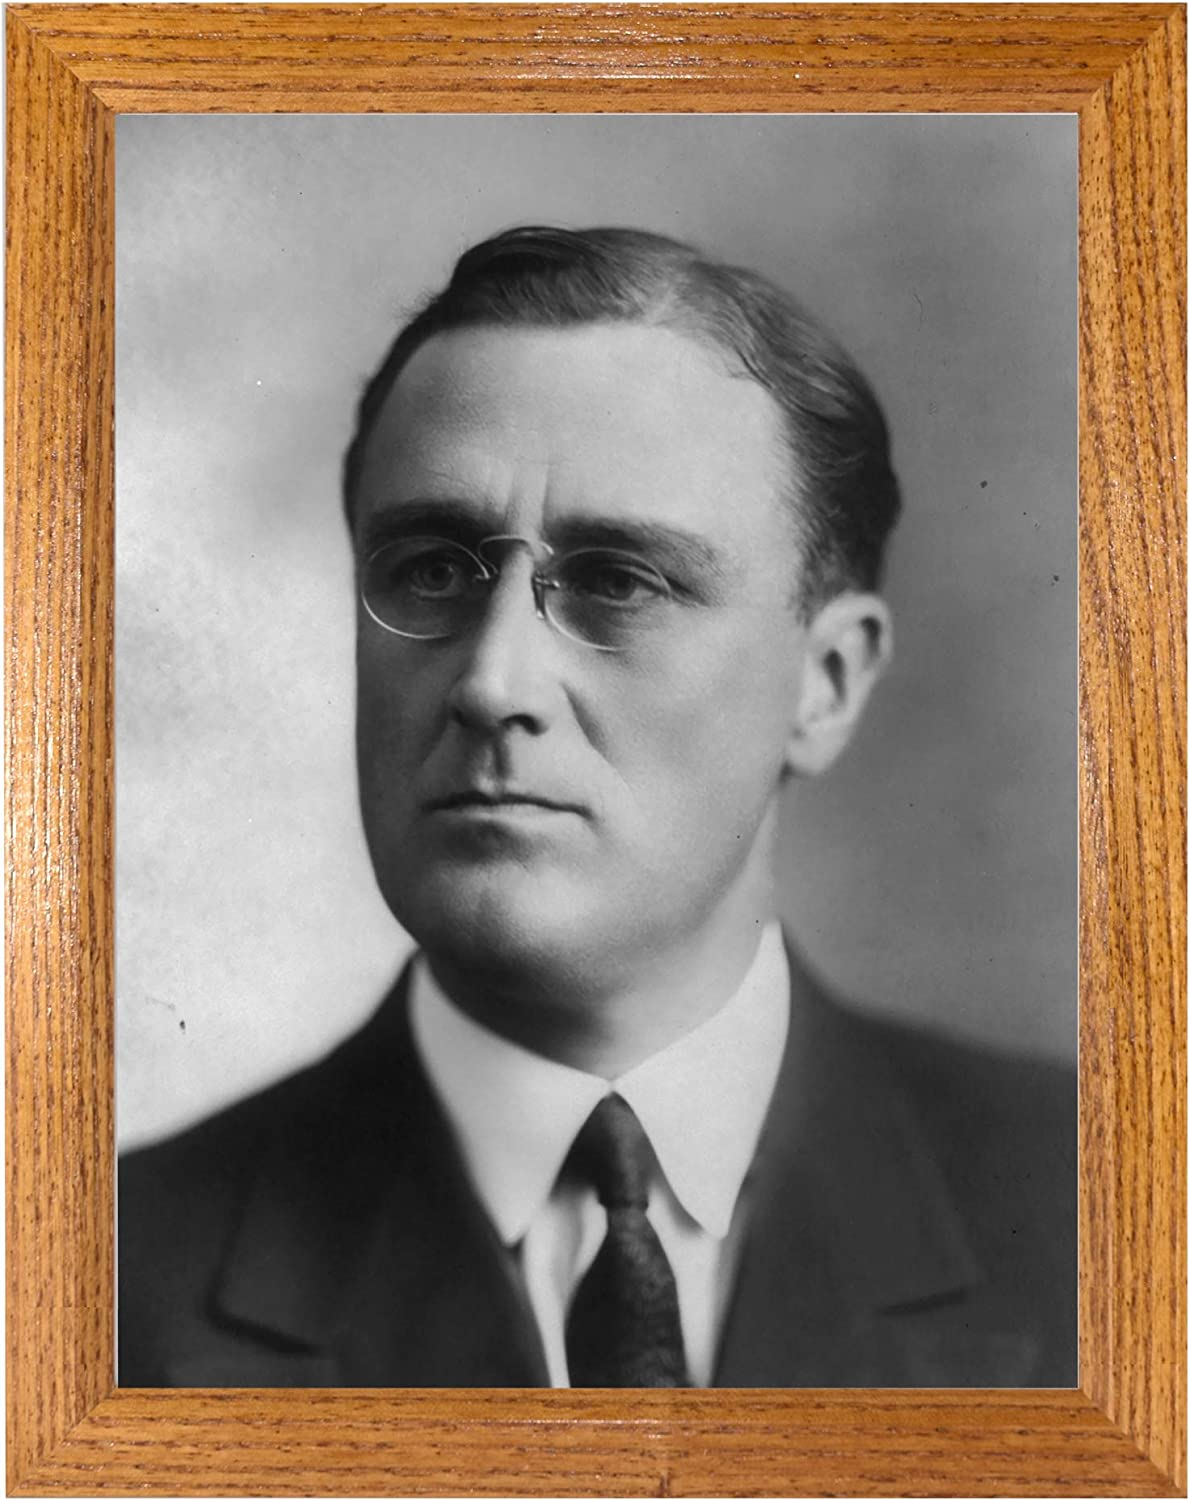 Franklin Delano Roosevelt Photograph in a Hi Honey Directly managed store Frame Brown Limited price -